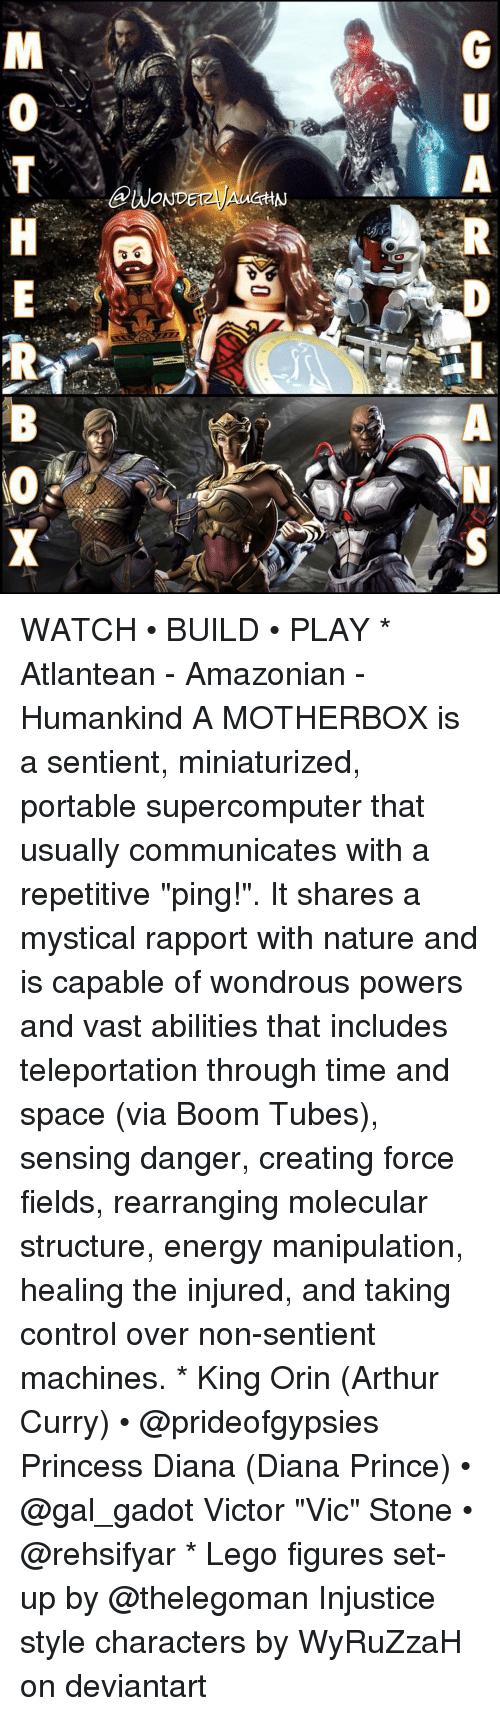 """figuratively: A  @WONDETzyAUCHN  GU  RP-ANS  MOTH E  RB (O X WATCH • BUILD • PLAY * Atlantean - Amazonian - Humankind A MOTHERBOX is a sentient, miniaturized, portable supercomputer that usually communicates with a repetitive """"ping!"""". It shares a mystical rapport with nature and is capable of wondrous powers and vast abilities that includes teleportation through time and space (via Boom Tubes), sensing danger, creating force fields, rearranging molecular structure, energy manipulation, healing the injured, and taking control over non-sentient machines. * King Orin (Arthur Curry) • @prideofgypsies Princess Diana (Diana Prince) • @gal_gadot Victor """"Vic"""" Stone • @rehsifyar * Lego figures set-up by @thelegoman Injustice style characters by WyRuZzaH on deviantart"""